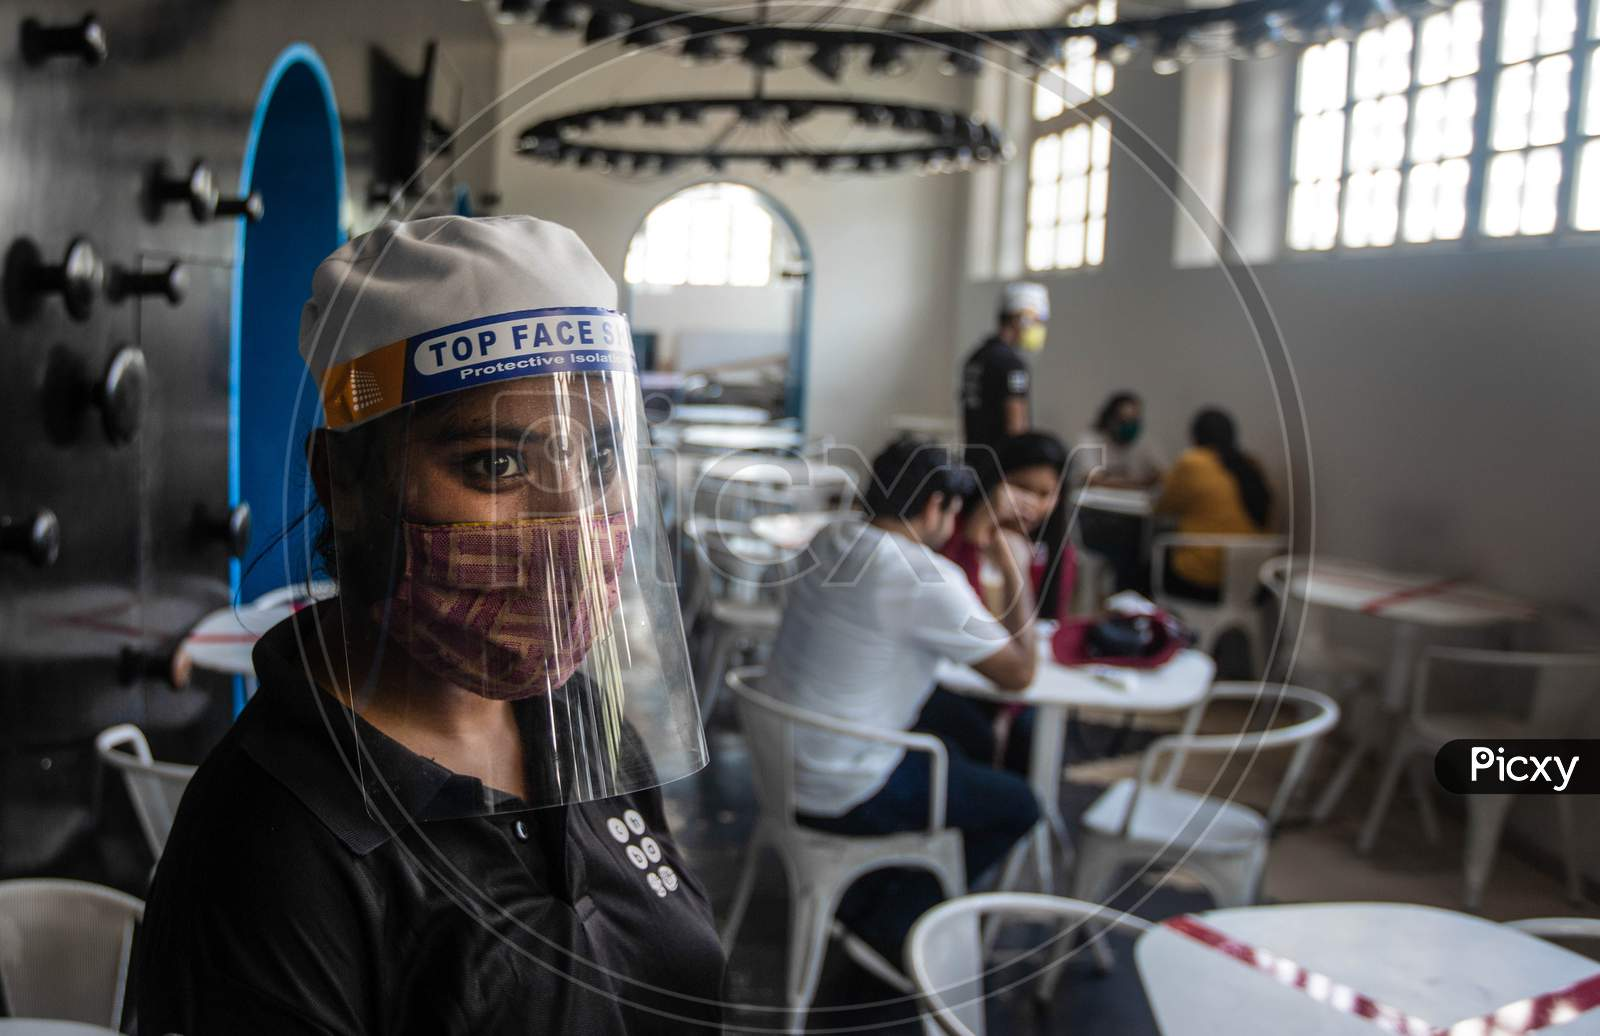 People Wearing Masks and face shields Are Seen At The Restaurant As India Eases Lockdown Restrictions That Were Imposed To Slow The Spread Of The Coronavirus Disease (Covid-19), In New Delhi, India, June 8, 2020.